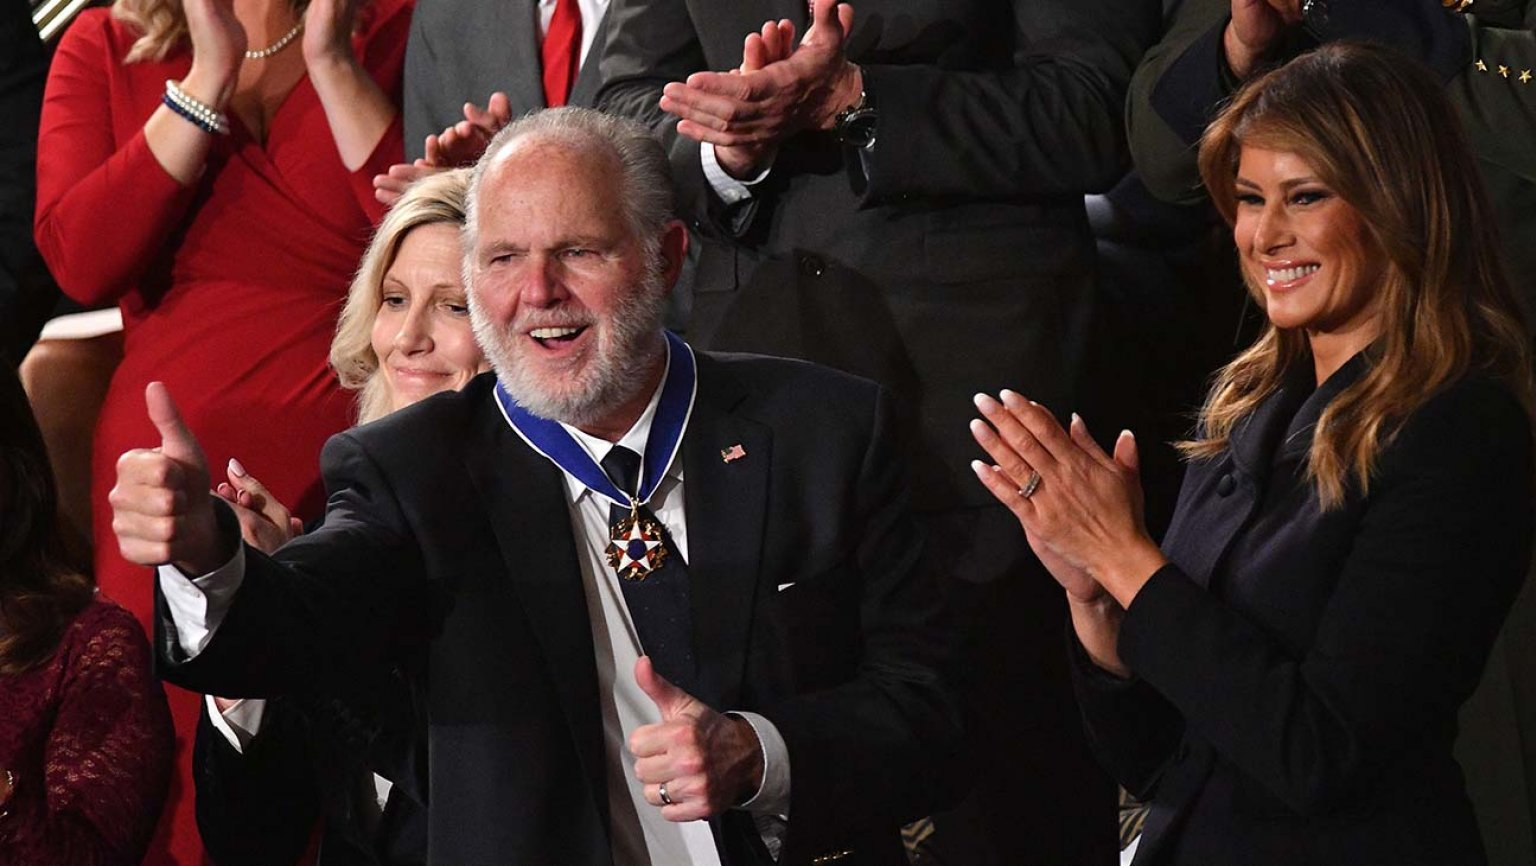 Rush Limbaugh Given Presidential Medal Following Cancer Diagnosis